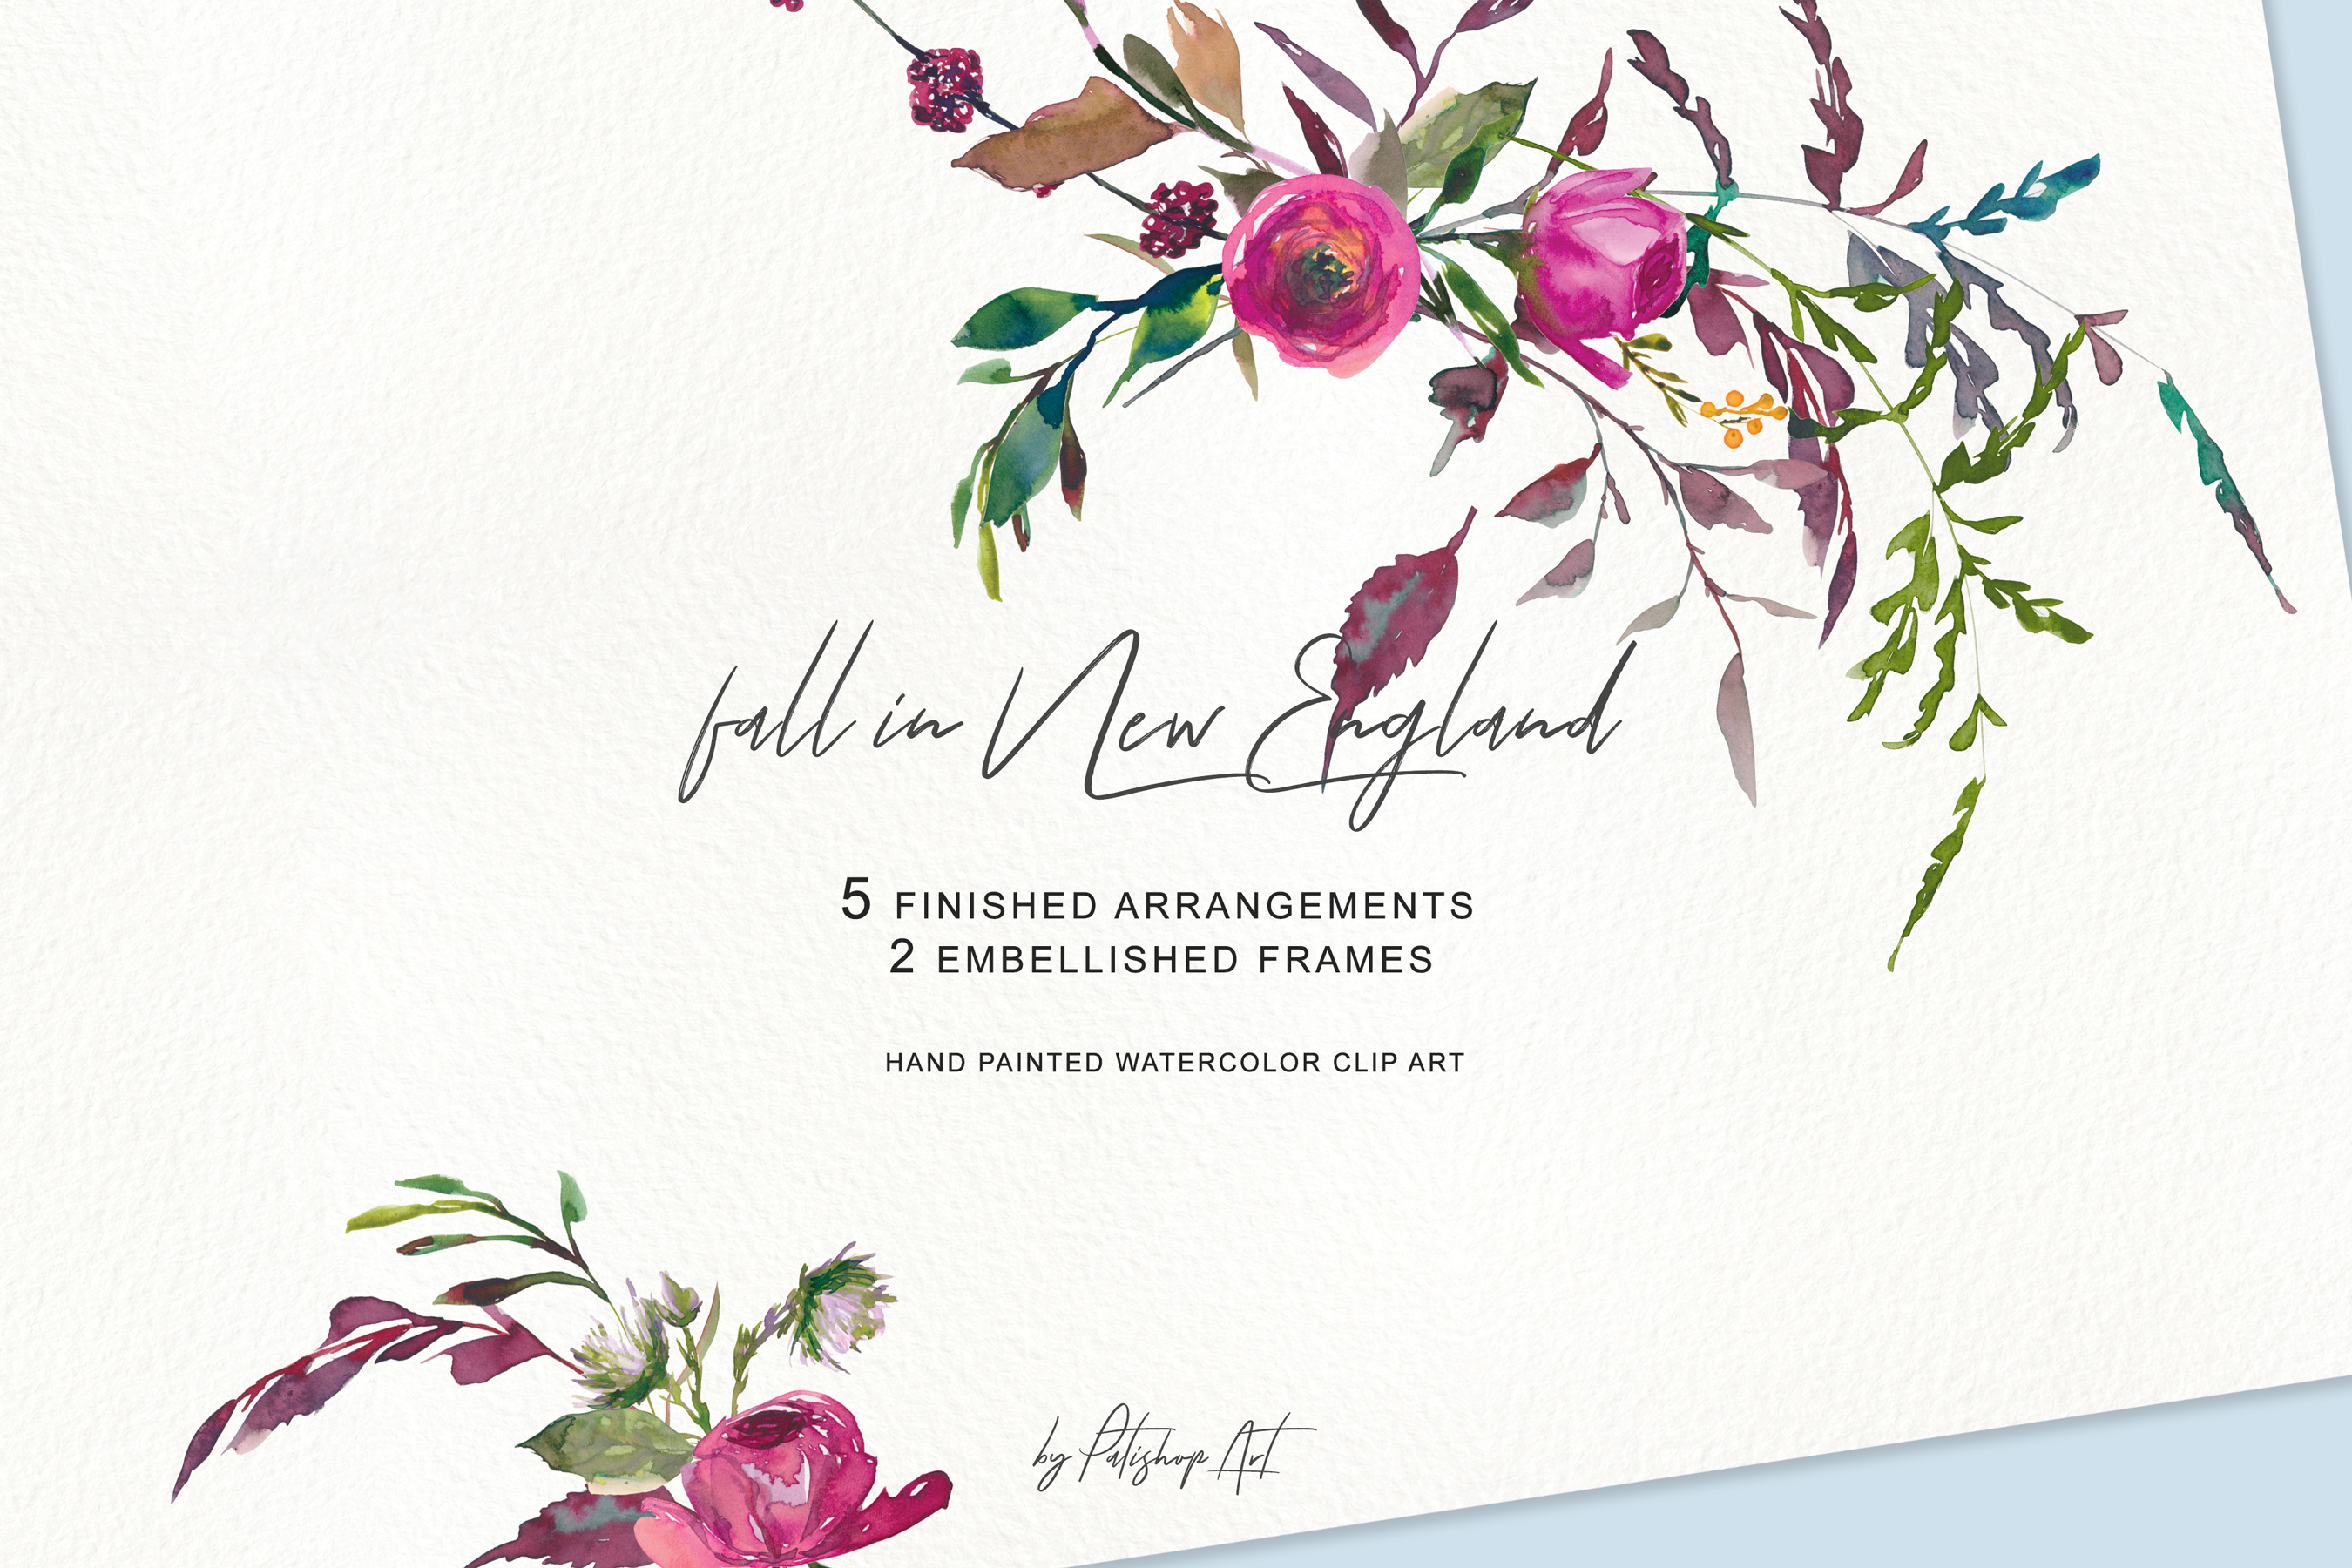 Watercolor Fall Twigs Herbs Flowers Arrangements Clipart example image 4